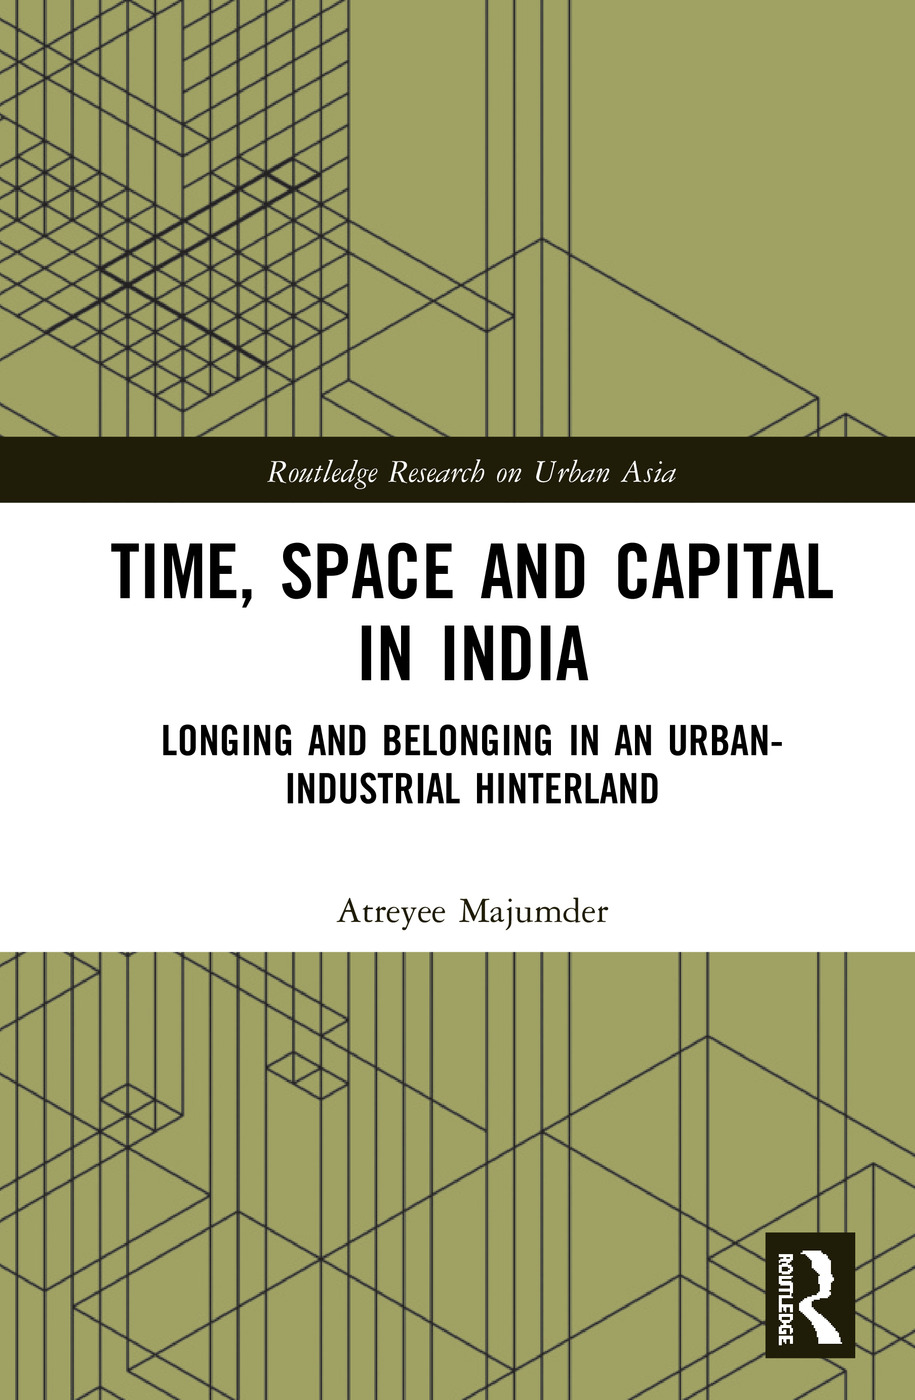 Time, Space and Capital in India: Longing and Belonging in an Urban-Industrial Hinterland book cover